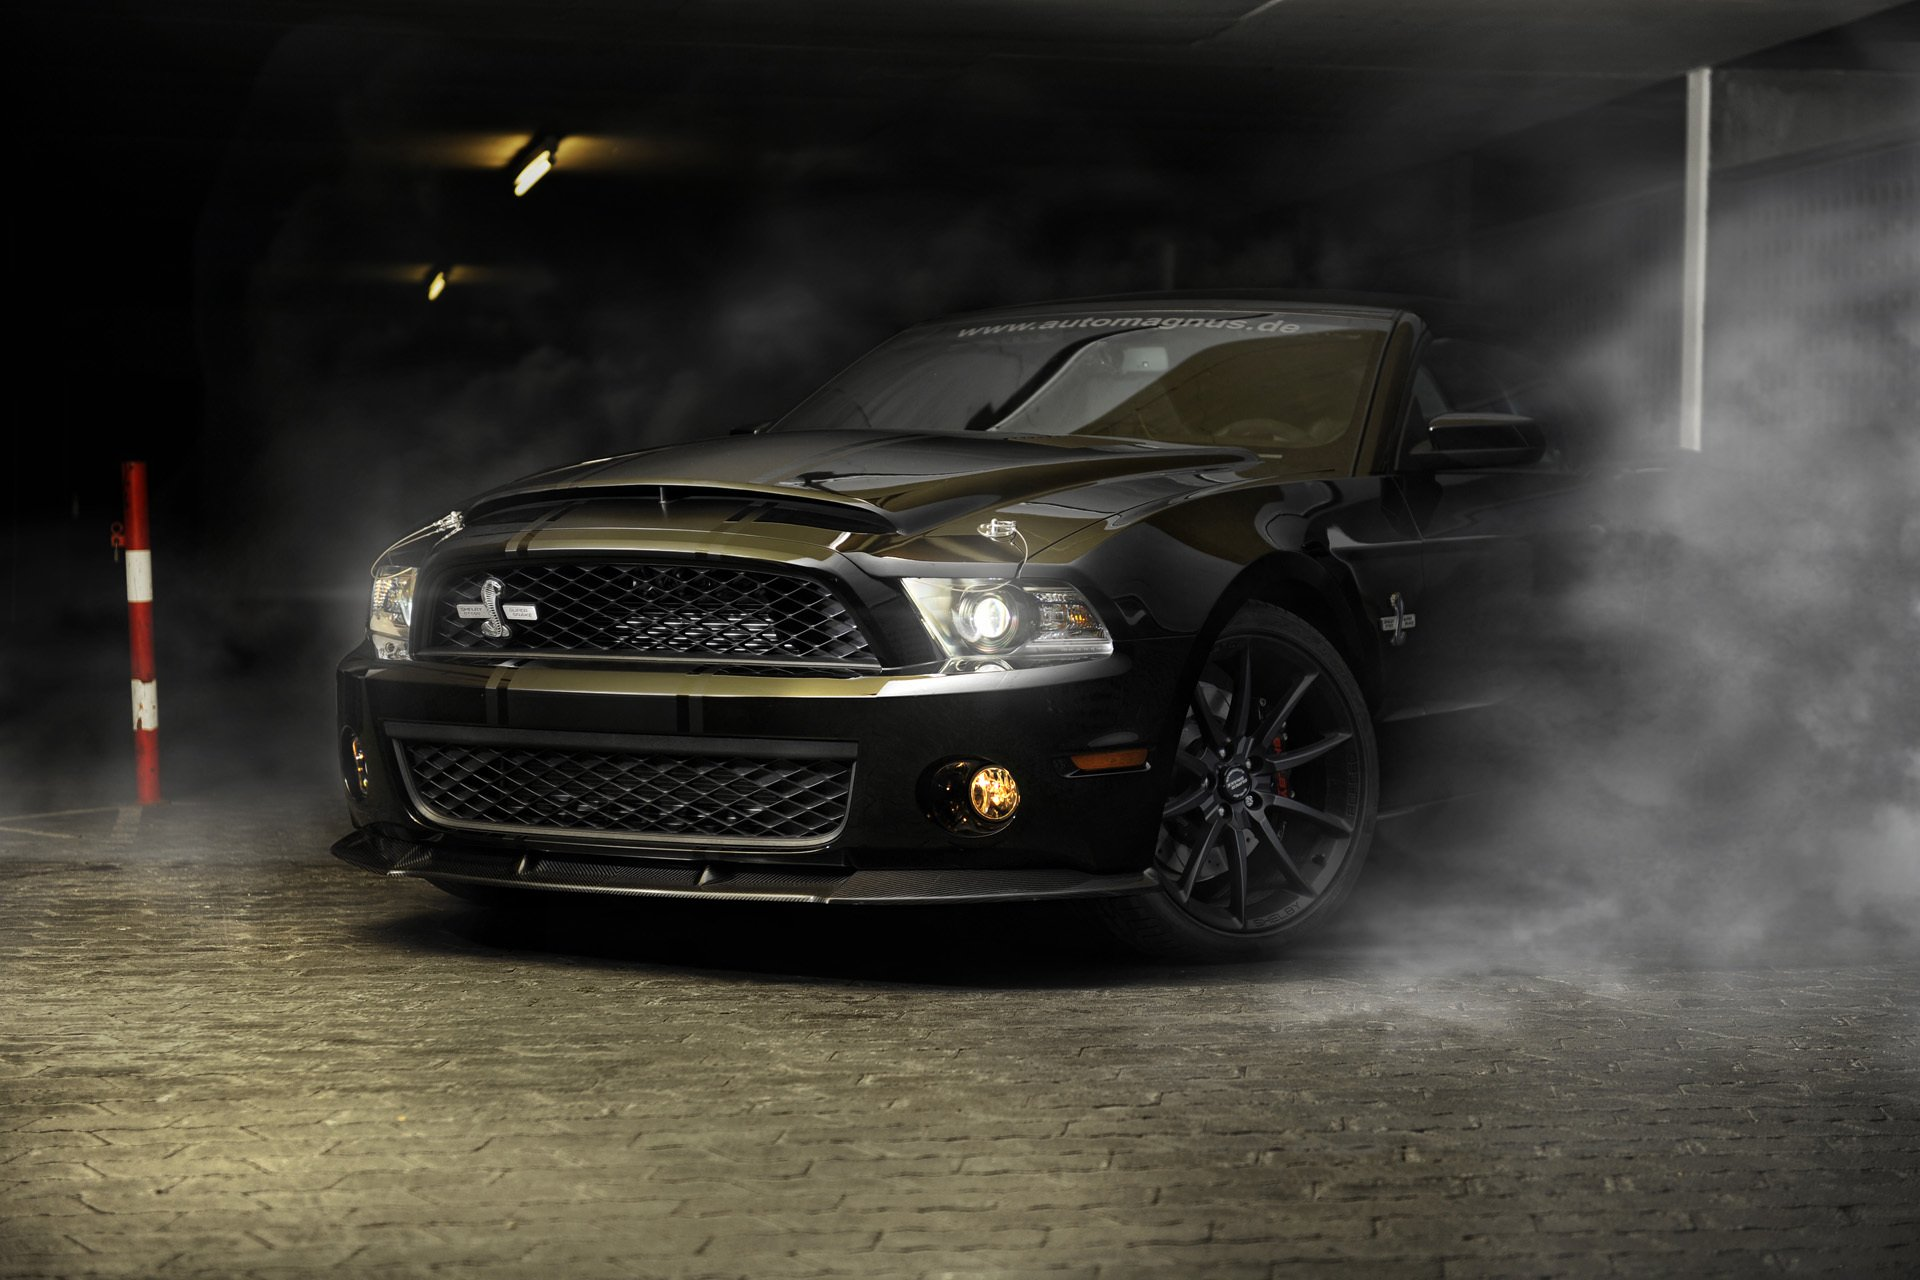 ford mustang hd wallpaper | background image | 1920x1280 | id:422727